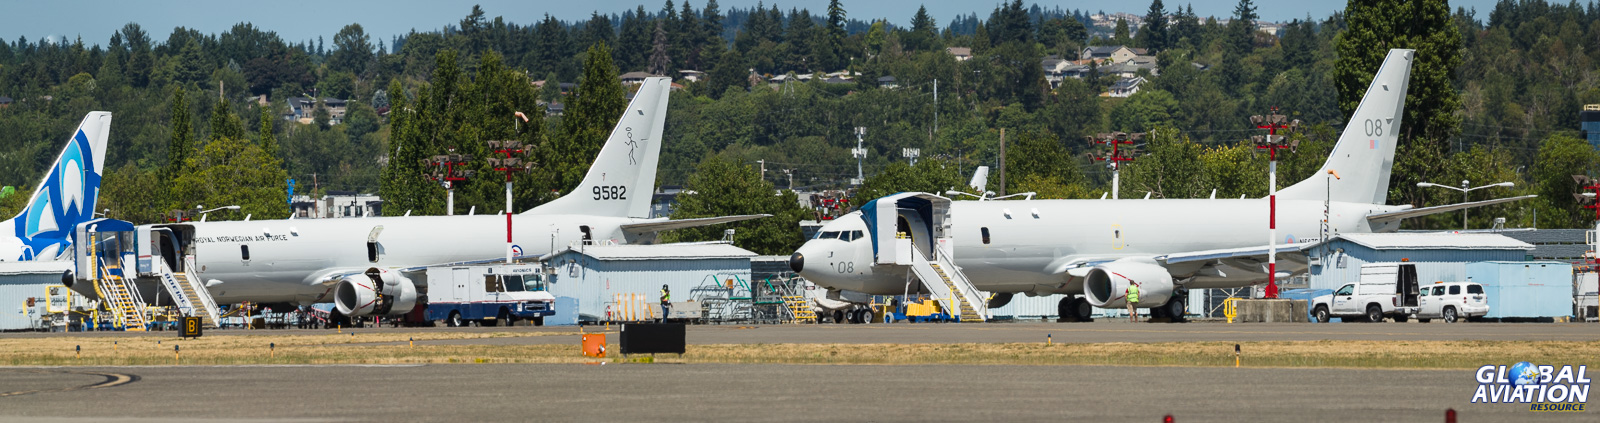 The Norwegian and RAF P-8s sit on the line at Renton - © Rob Edgcumbe - Global Aviation Resource